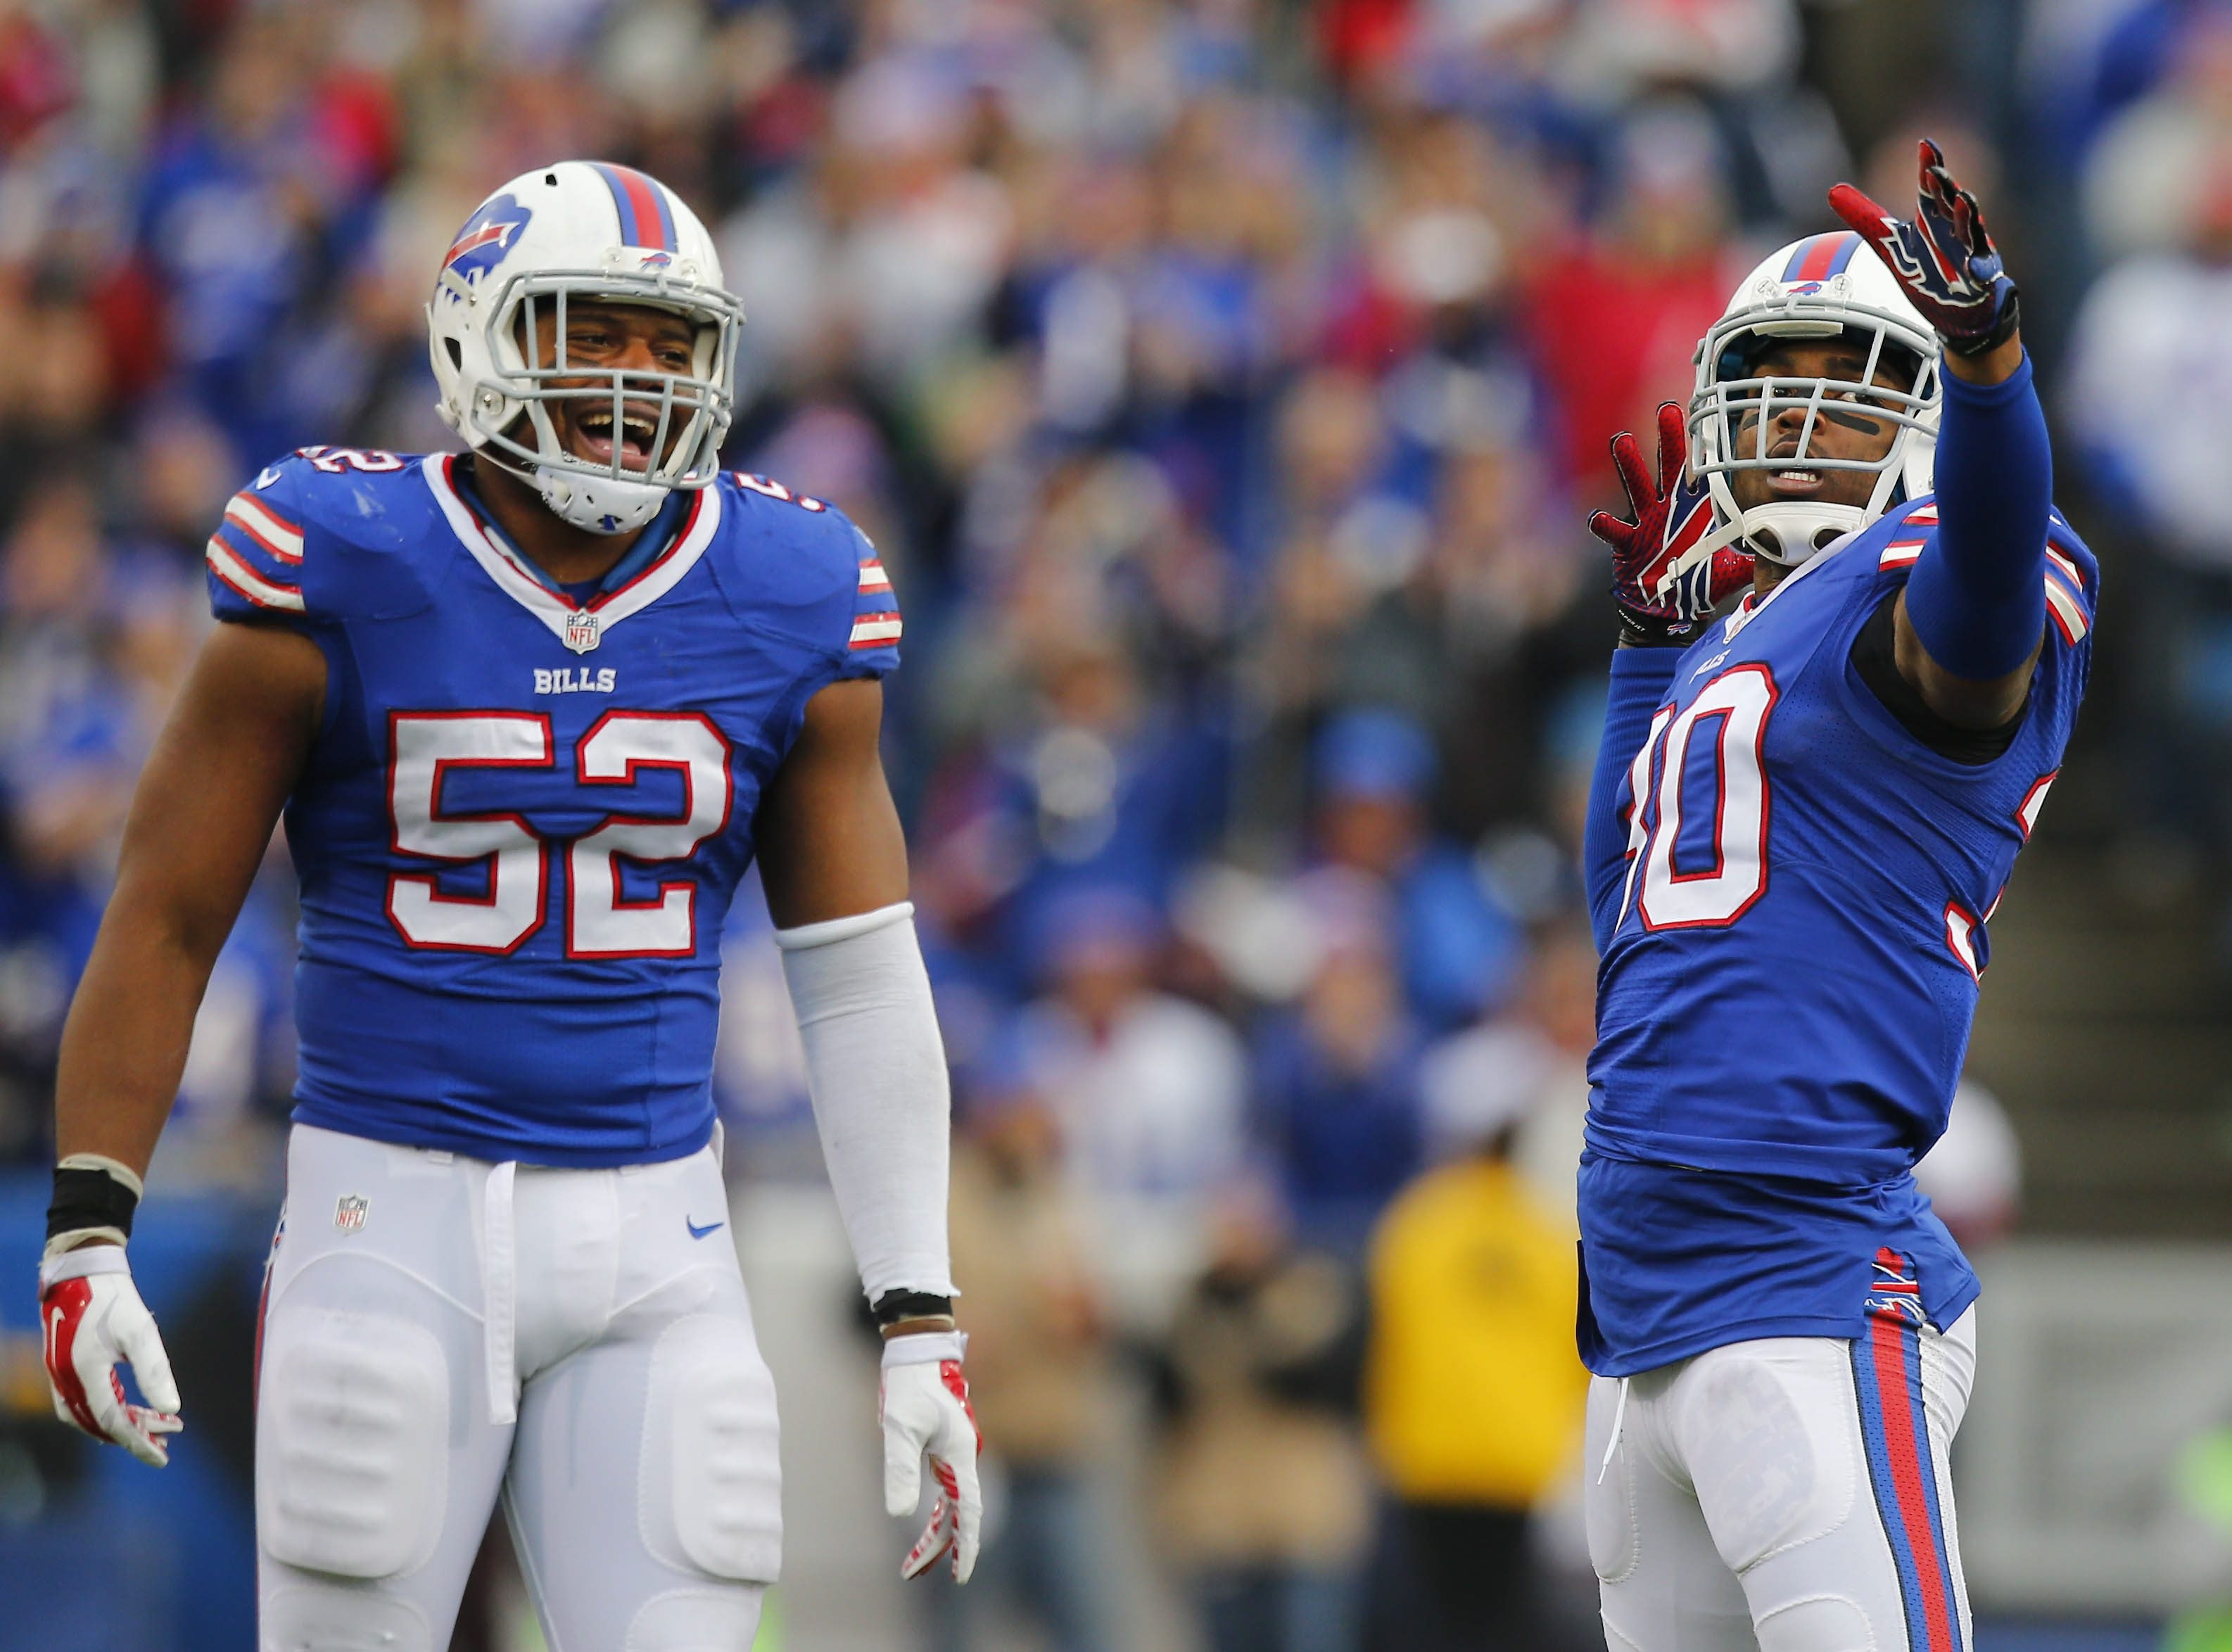 Buffalo Bills' Bacarri Rambo celebrates his sack with teammate Preston Brown in the third quarter at Ralph Wilson Stadium in Orchard Park, Sunday, Dec. 6, 2015.  (Mark Mulville/Buffalo News)